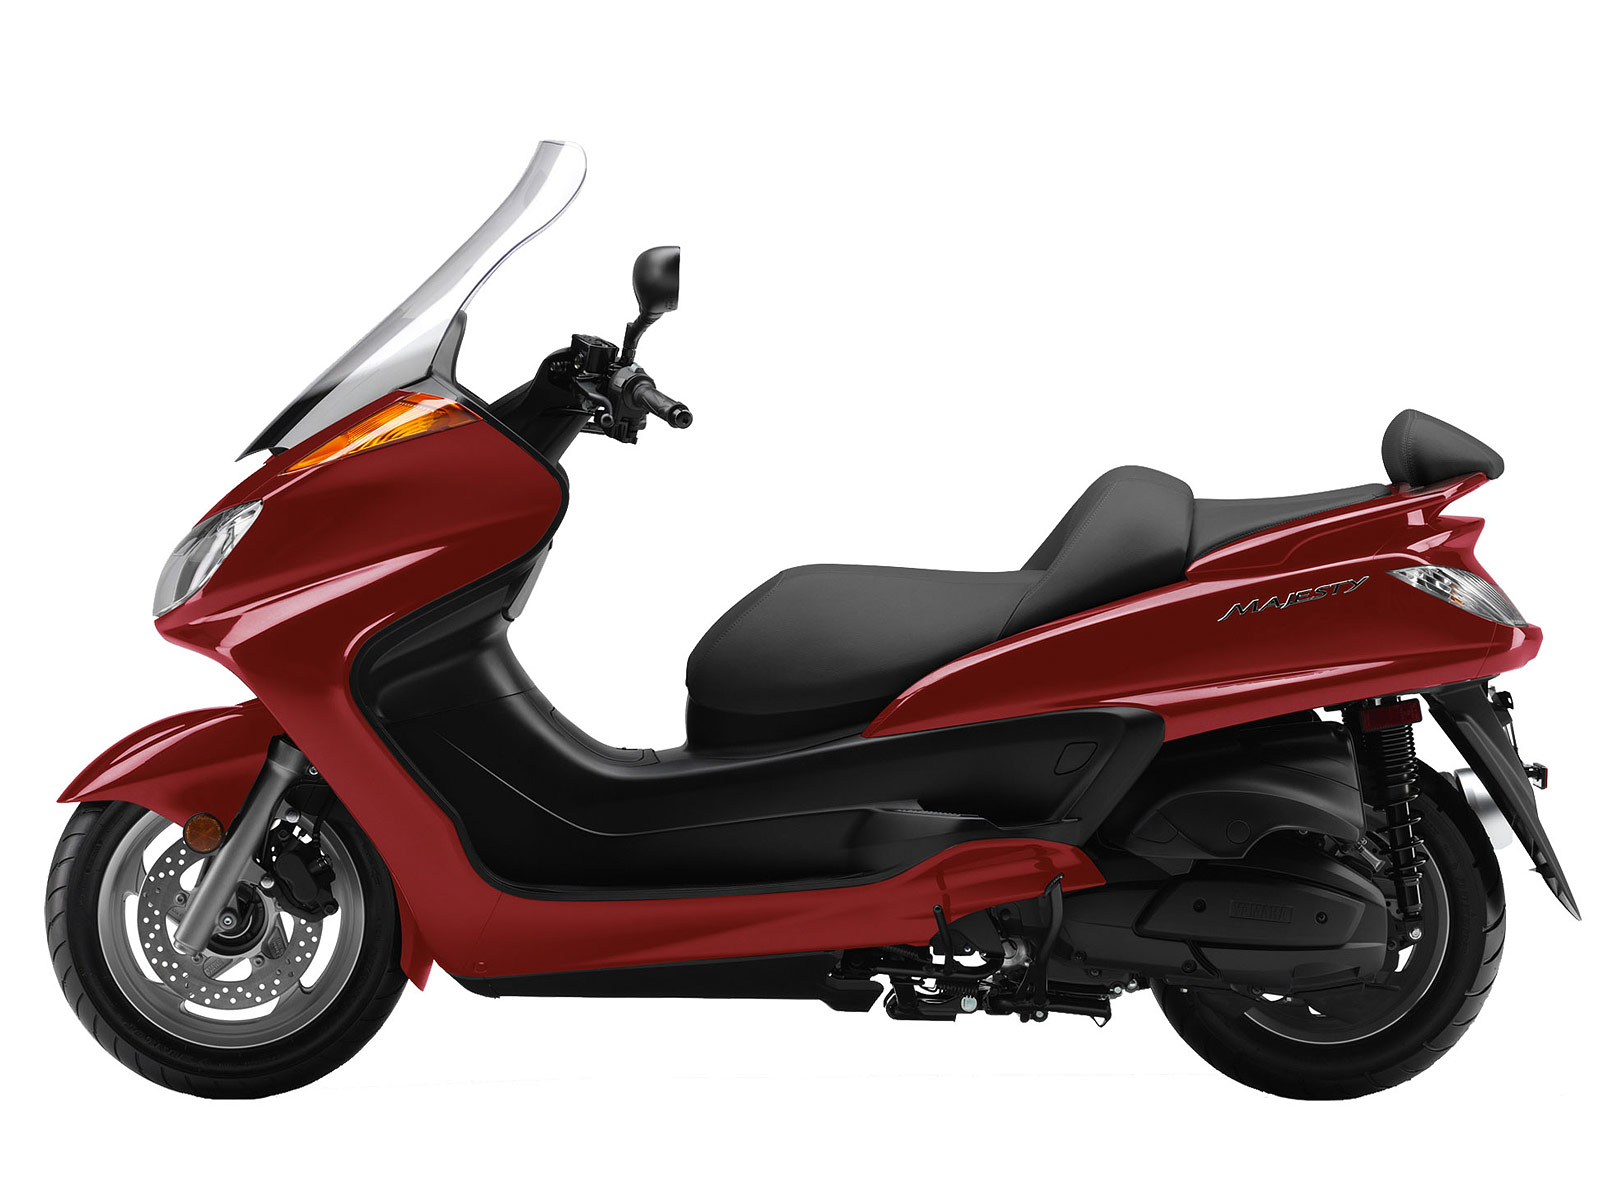 Yamaha Scooter Pictures 2014 Majesty Insurance Information